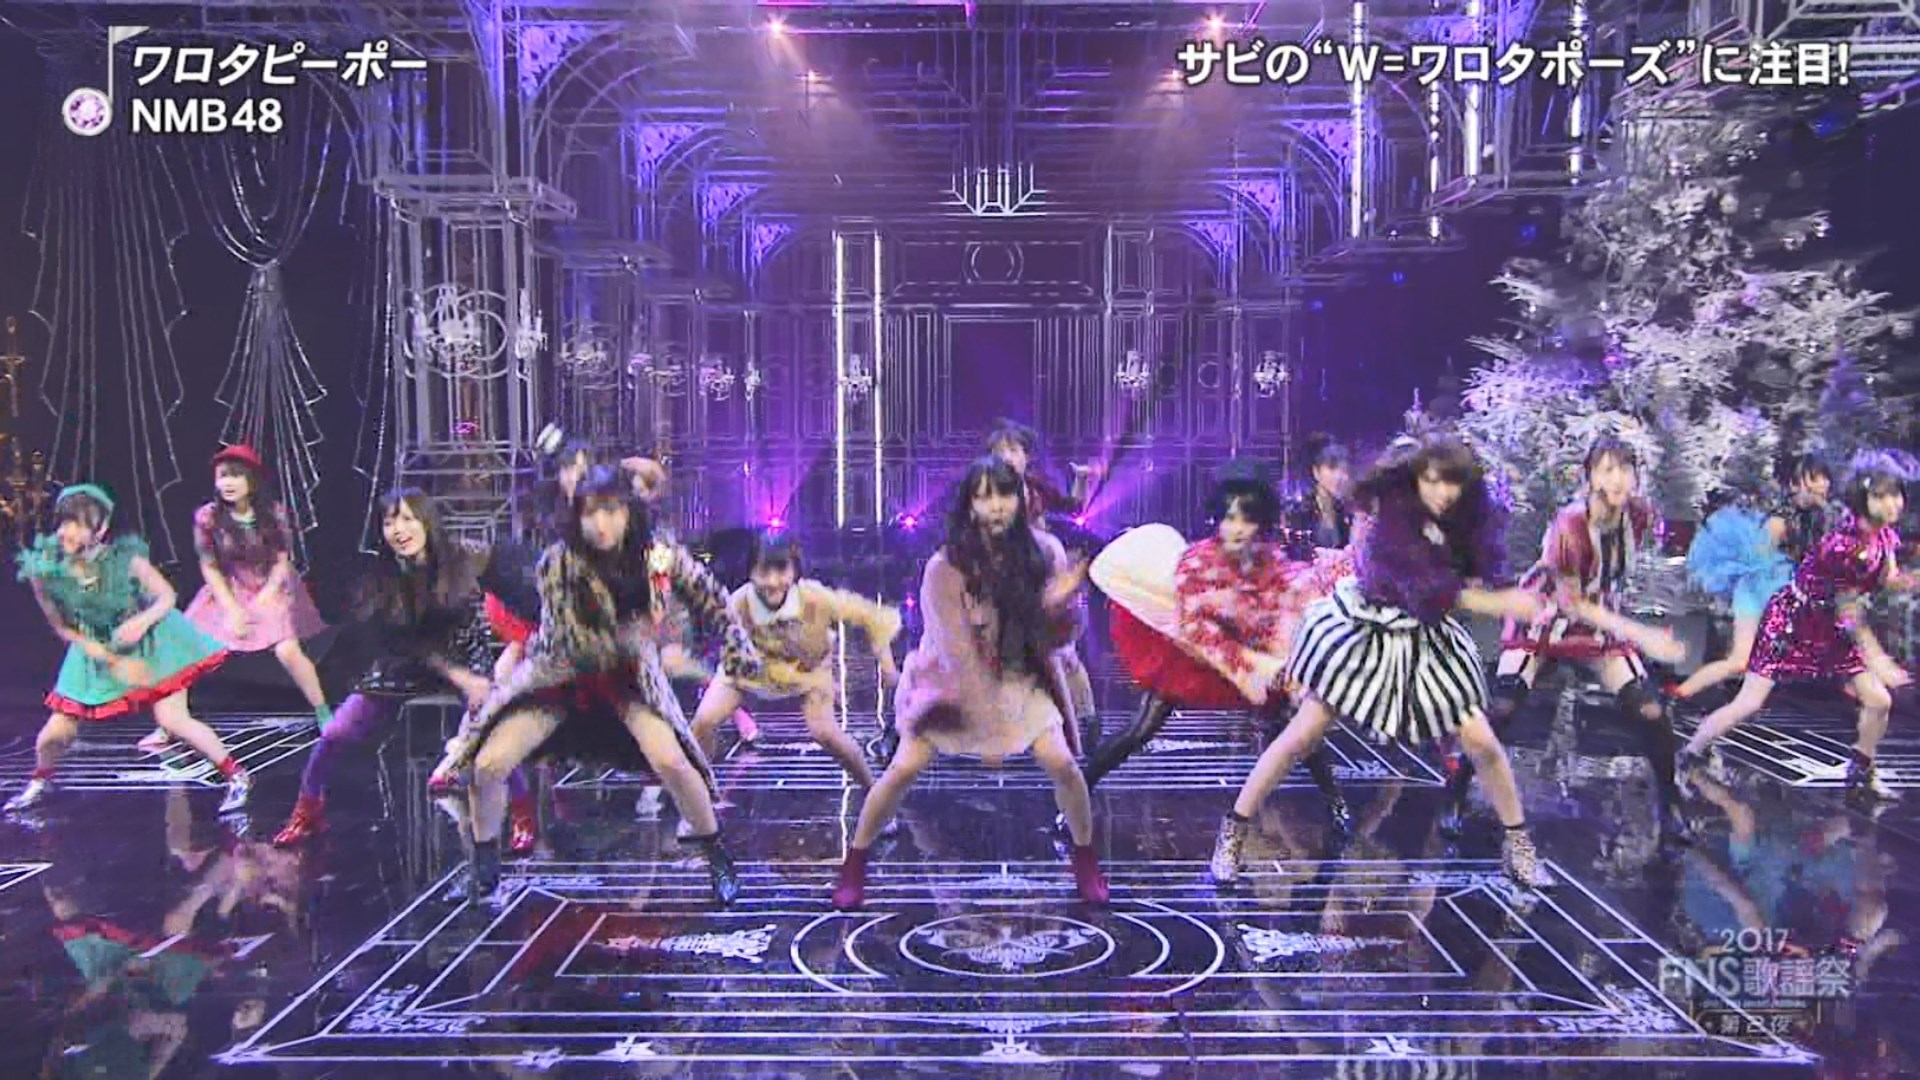 2017FNS歌謡祭第2夜・NMB48ワロタピーポーキャプ-052